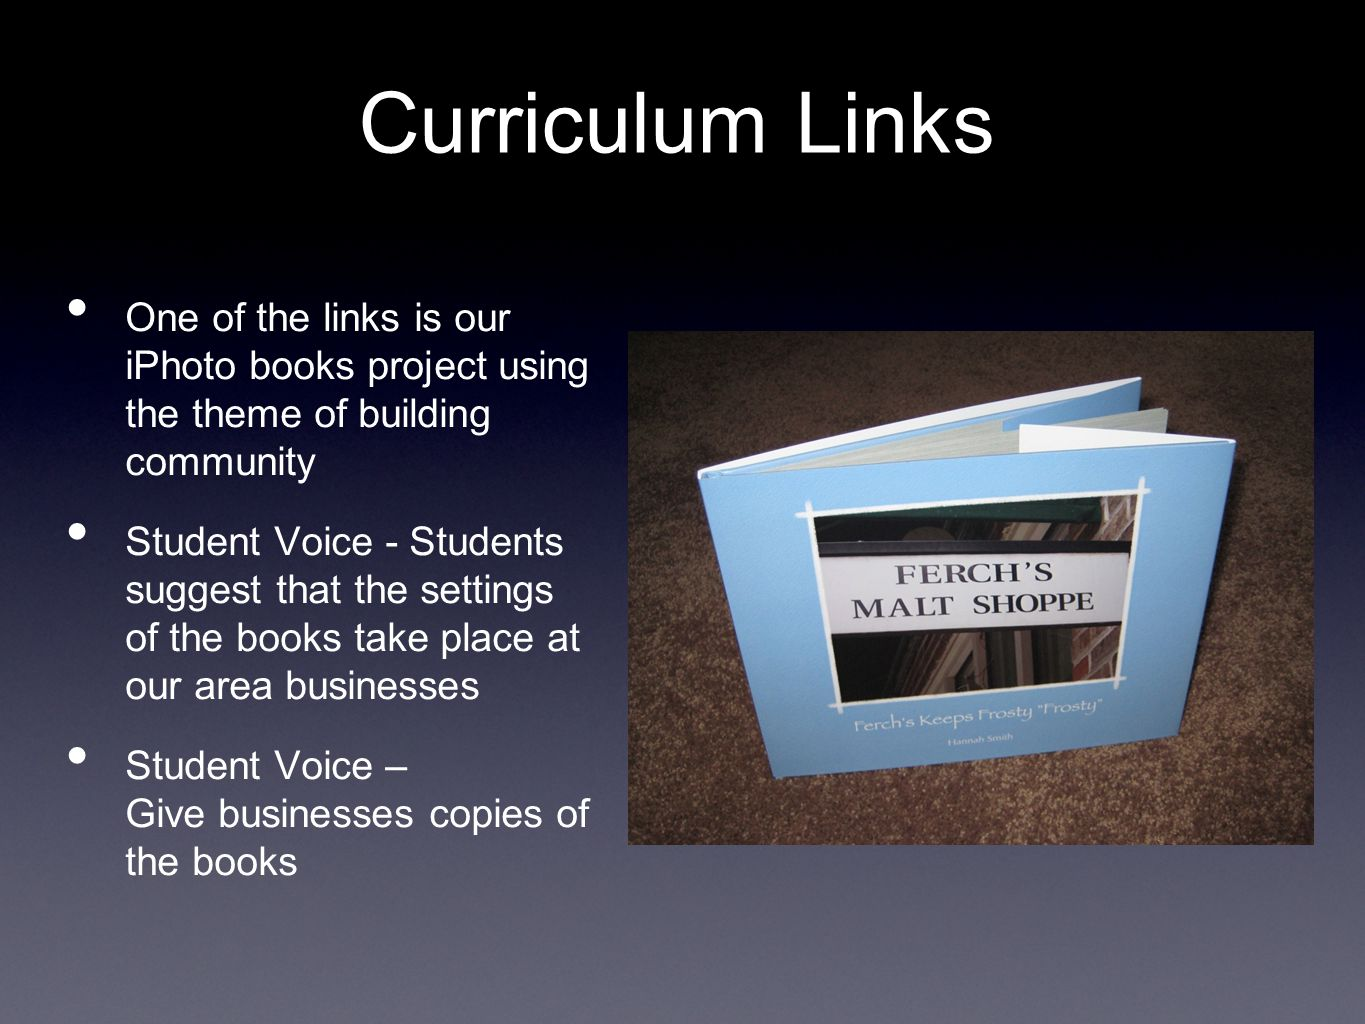 Curriculum Links One of the links is our iPhoto books project using the theme of building community Student Voice - Students suggest that the settings of the books take place at our area businesses Student Voice – Give businesses copies of the books